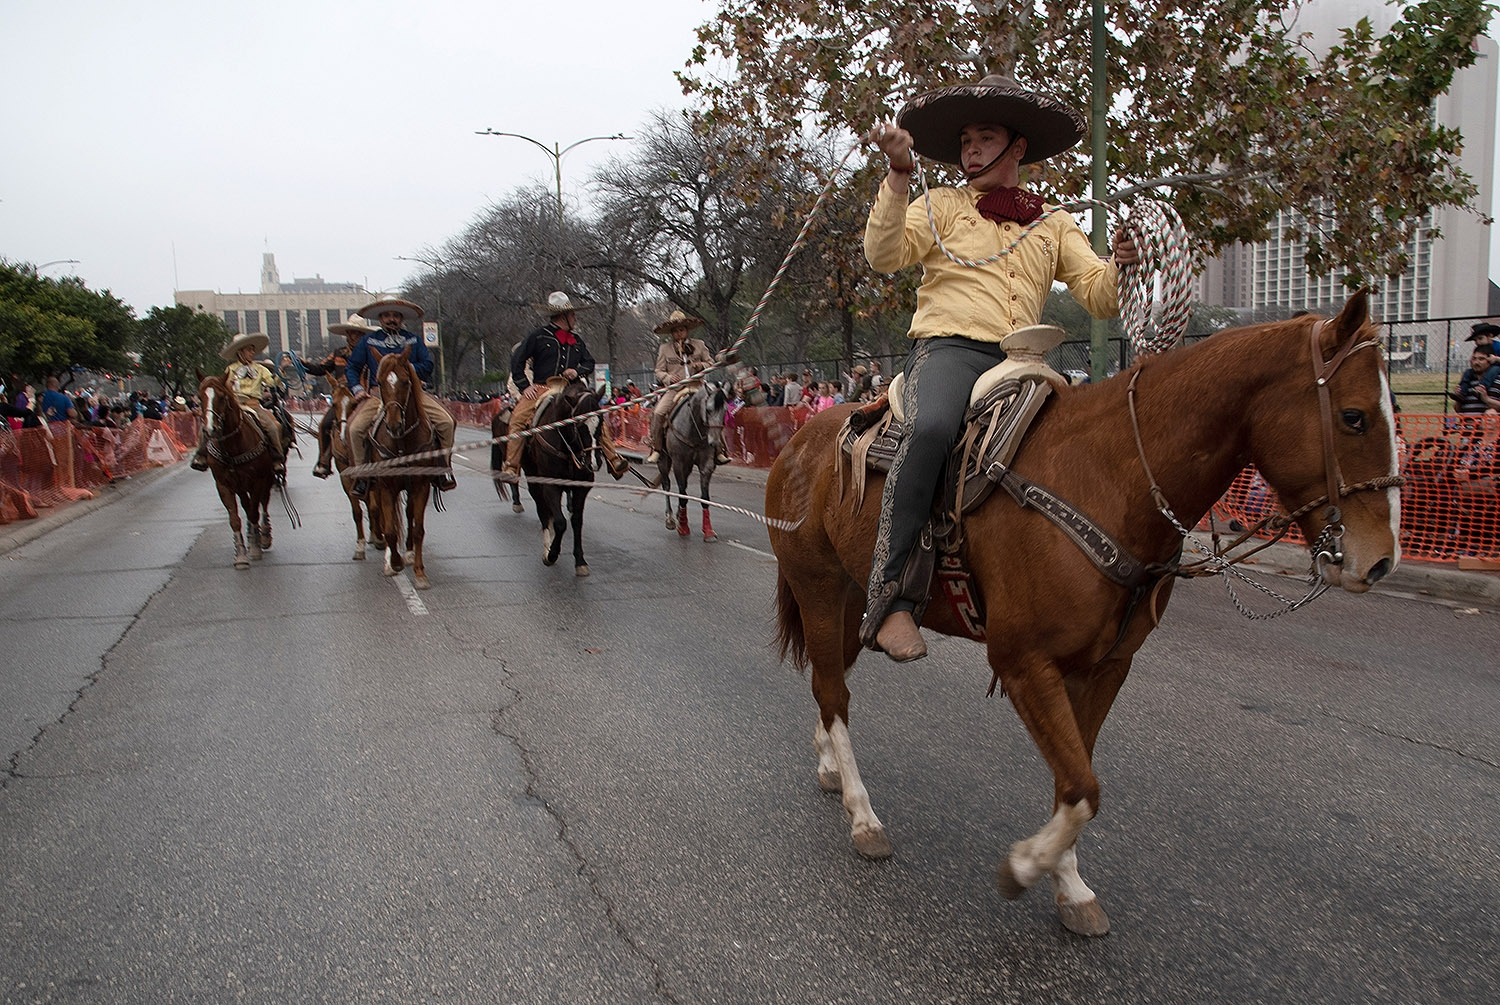 A member of Charros de Bejar lasso's during the Western Heritage Parade and Cattle Drive Feb. 2 on S Alamo St. <em><b>V. Finster | Heron</b></em>